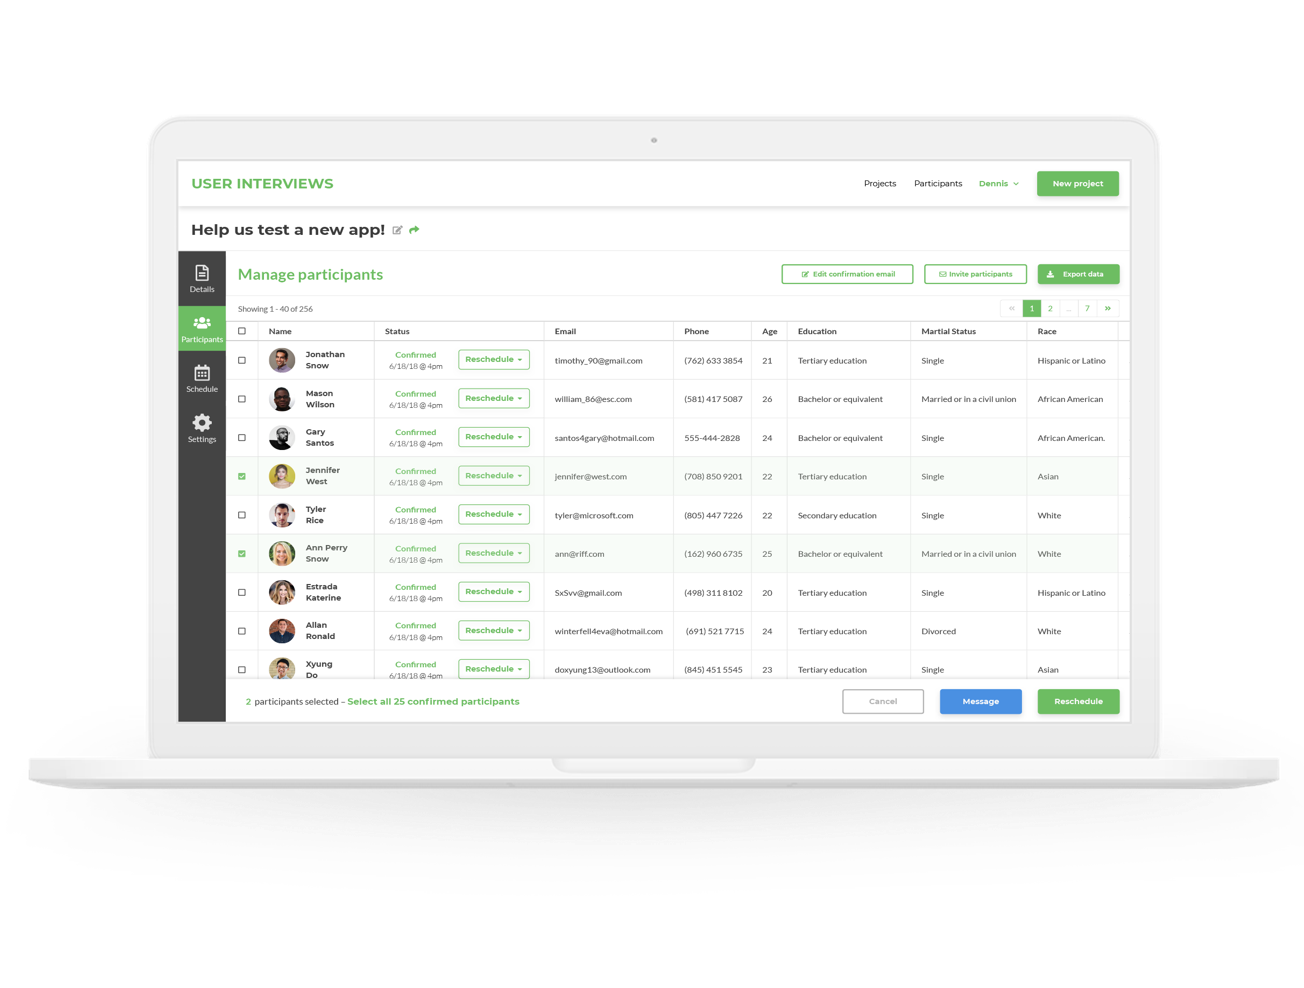 User Interviews, a platform for product feedback, raises $5 million User Interviews, a platform for product feedback, raises $5 million UI